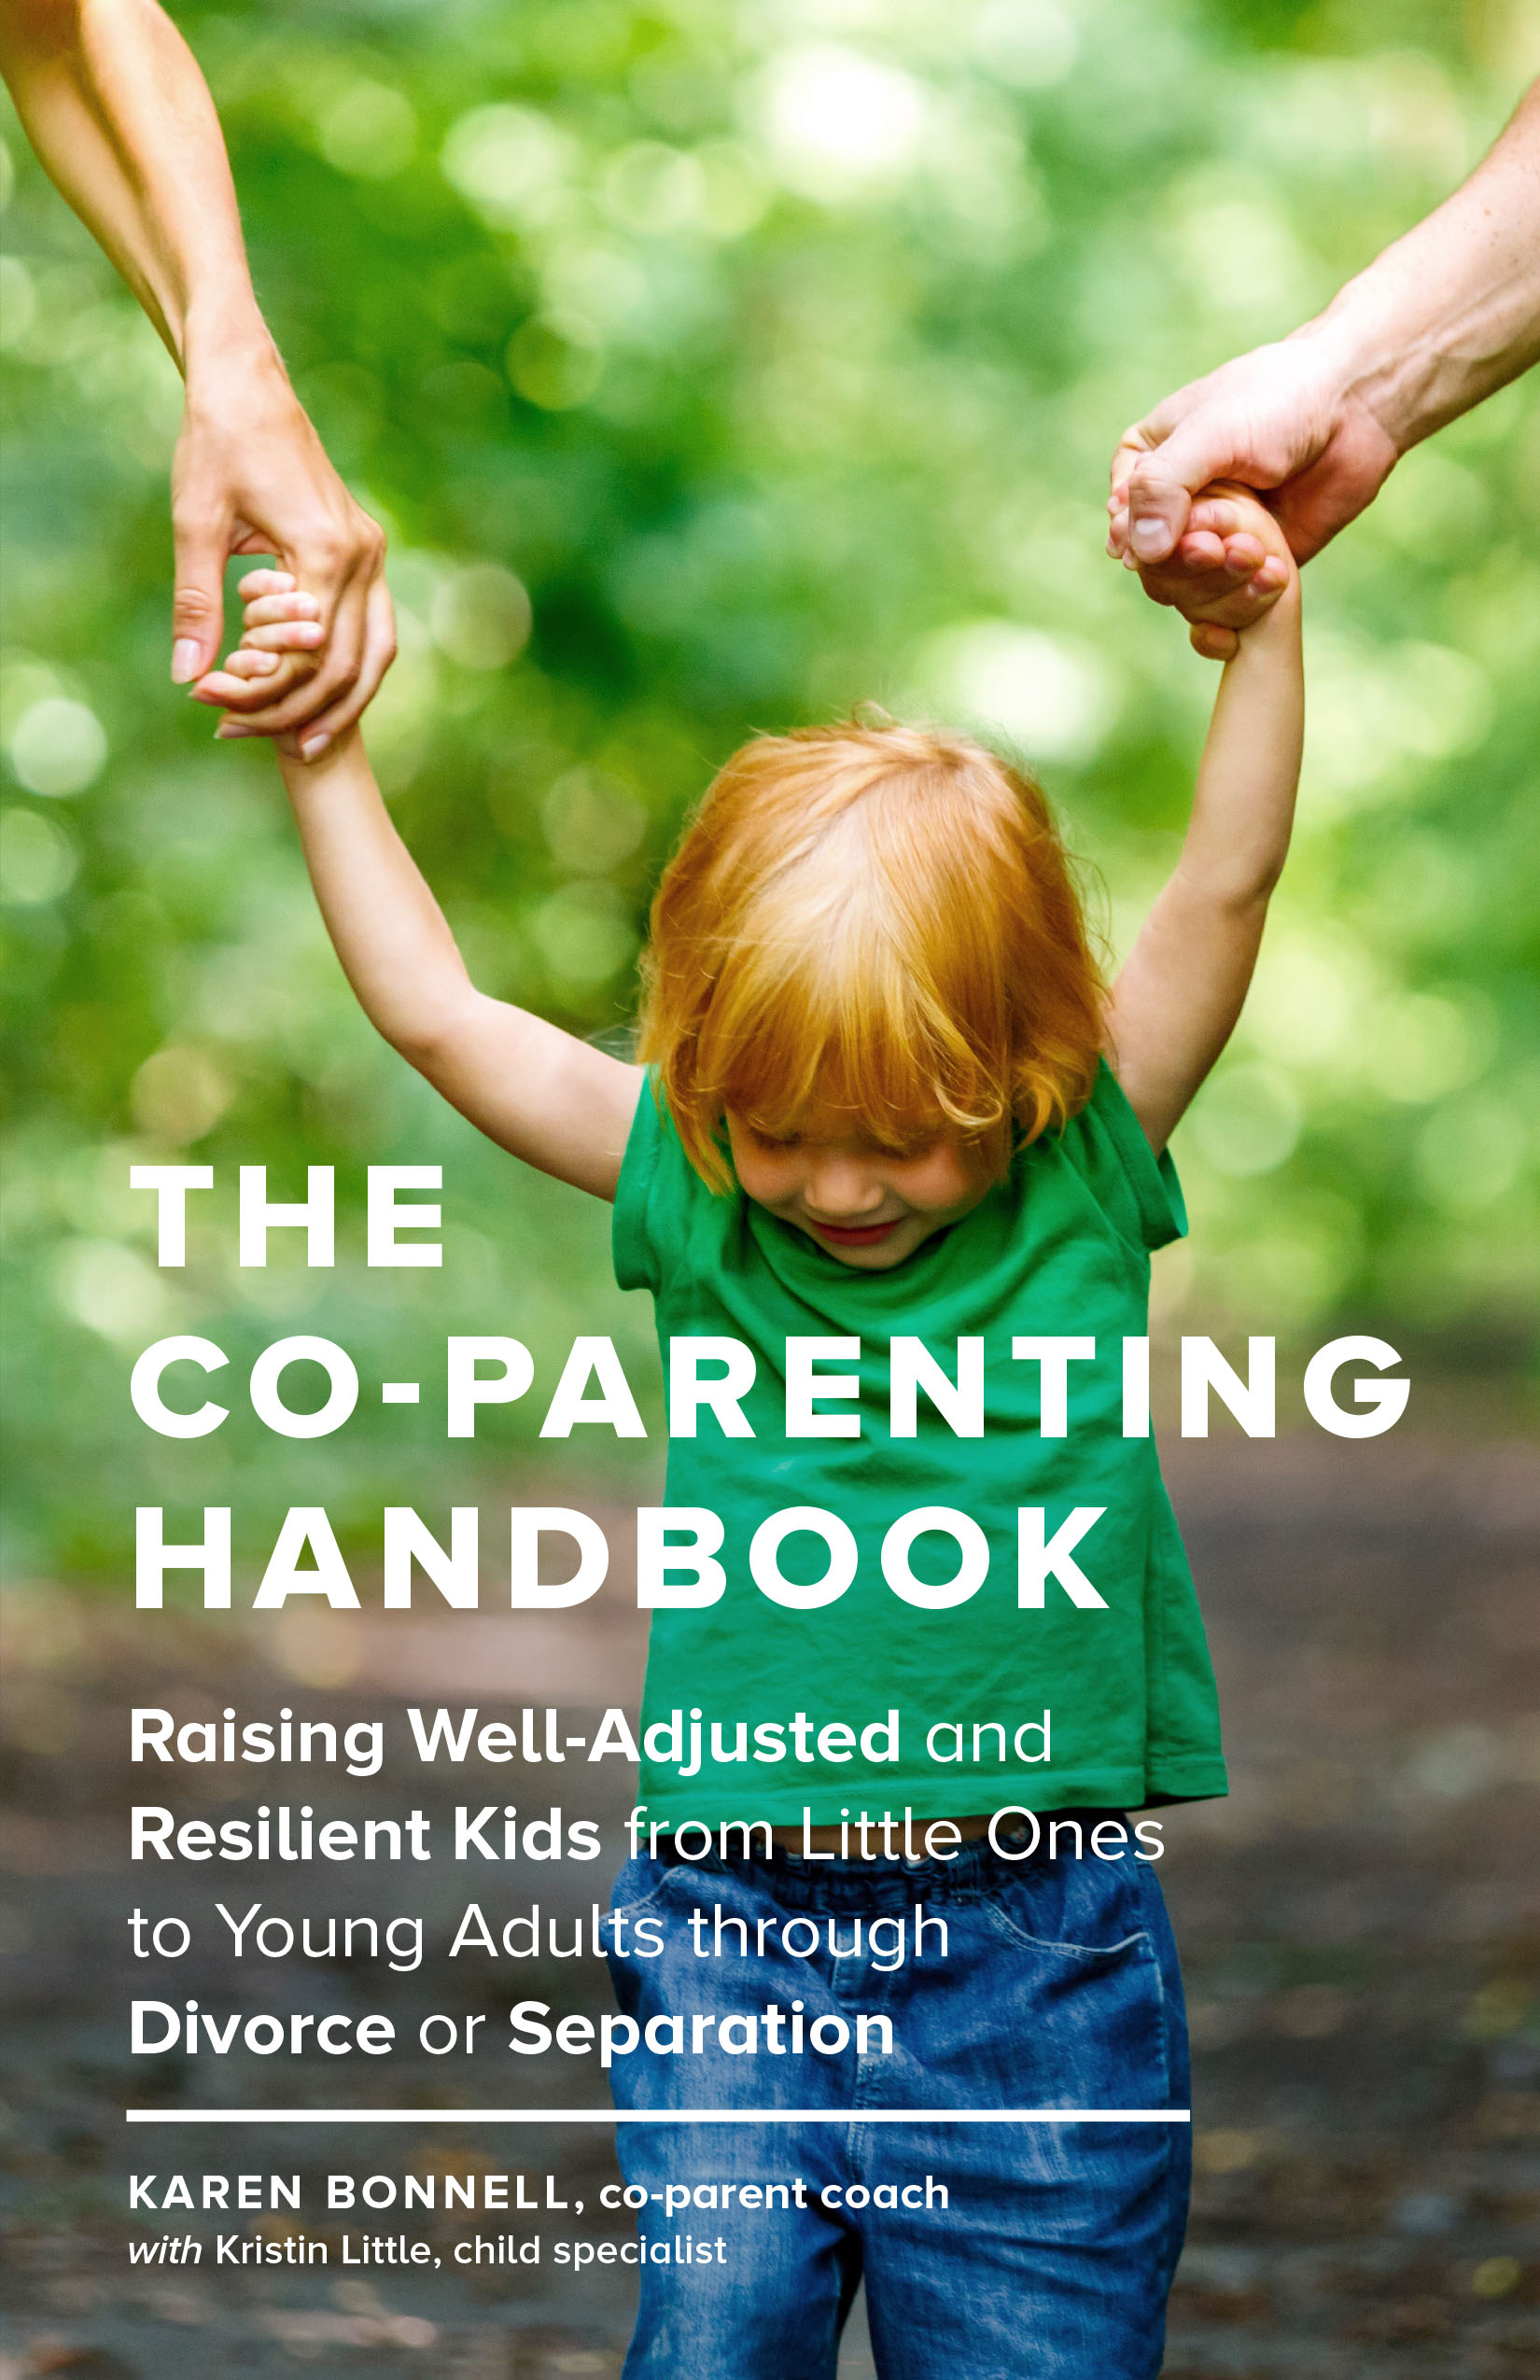 The cover image of The Co-Parenting Handbook (Sasquatch Books/PA)